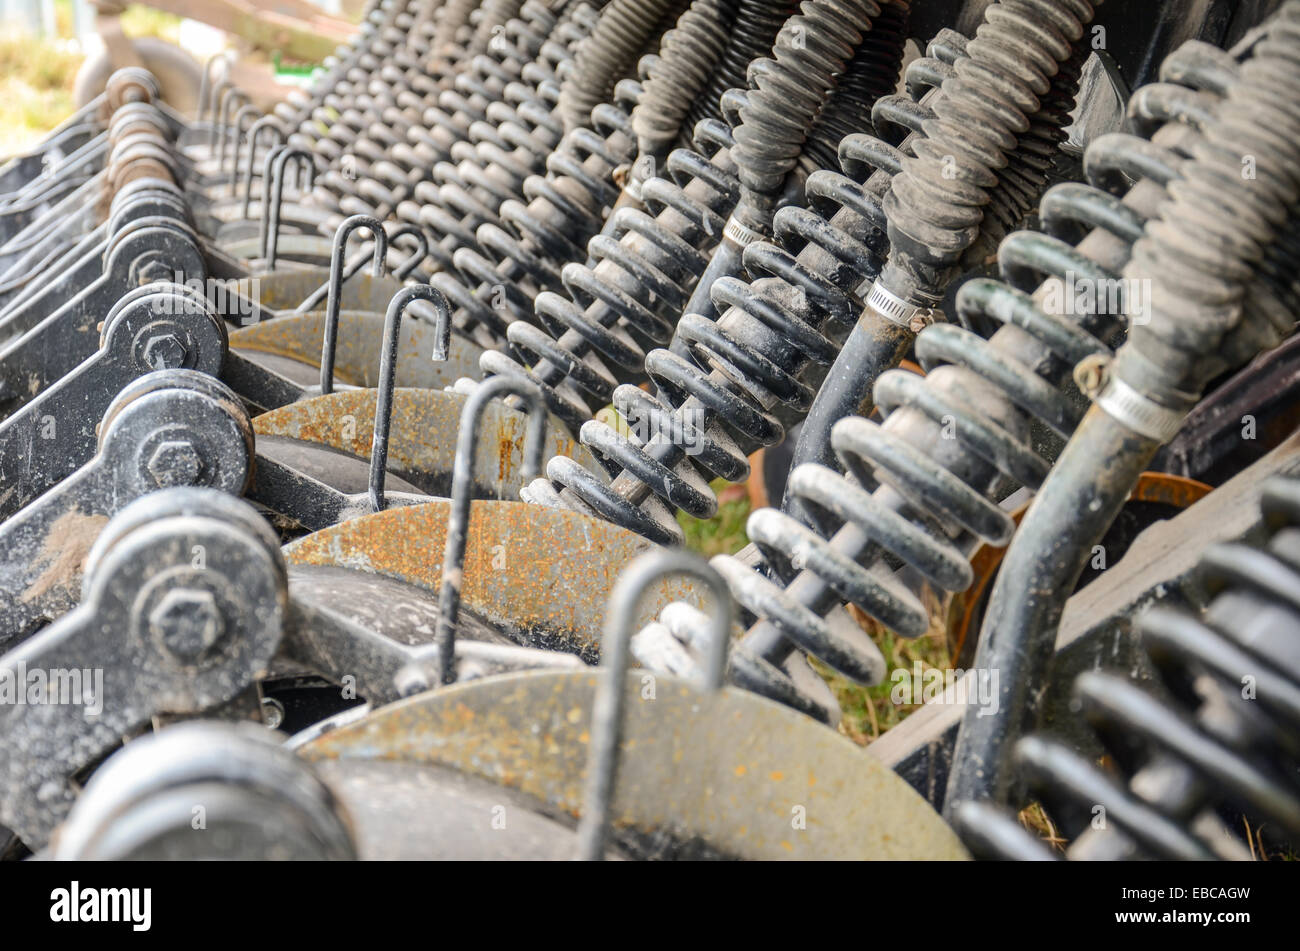 Springs and pistons inside of agricultural machinery in San Ramon, Canelones, Uruguay Stock Photo